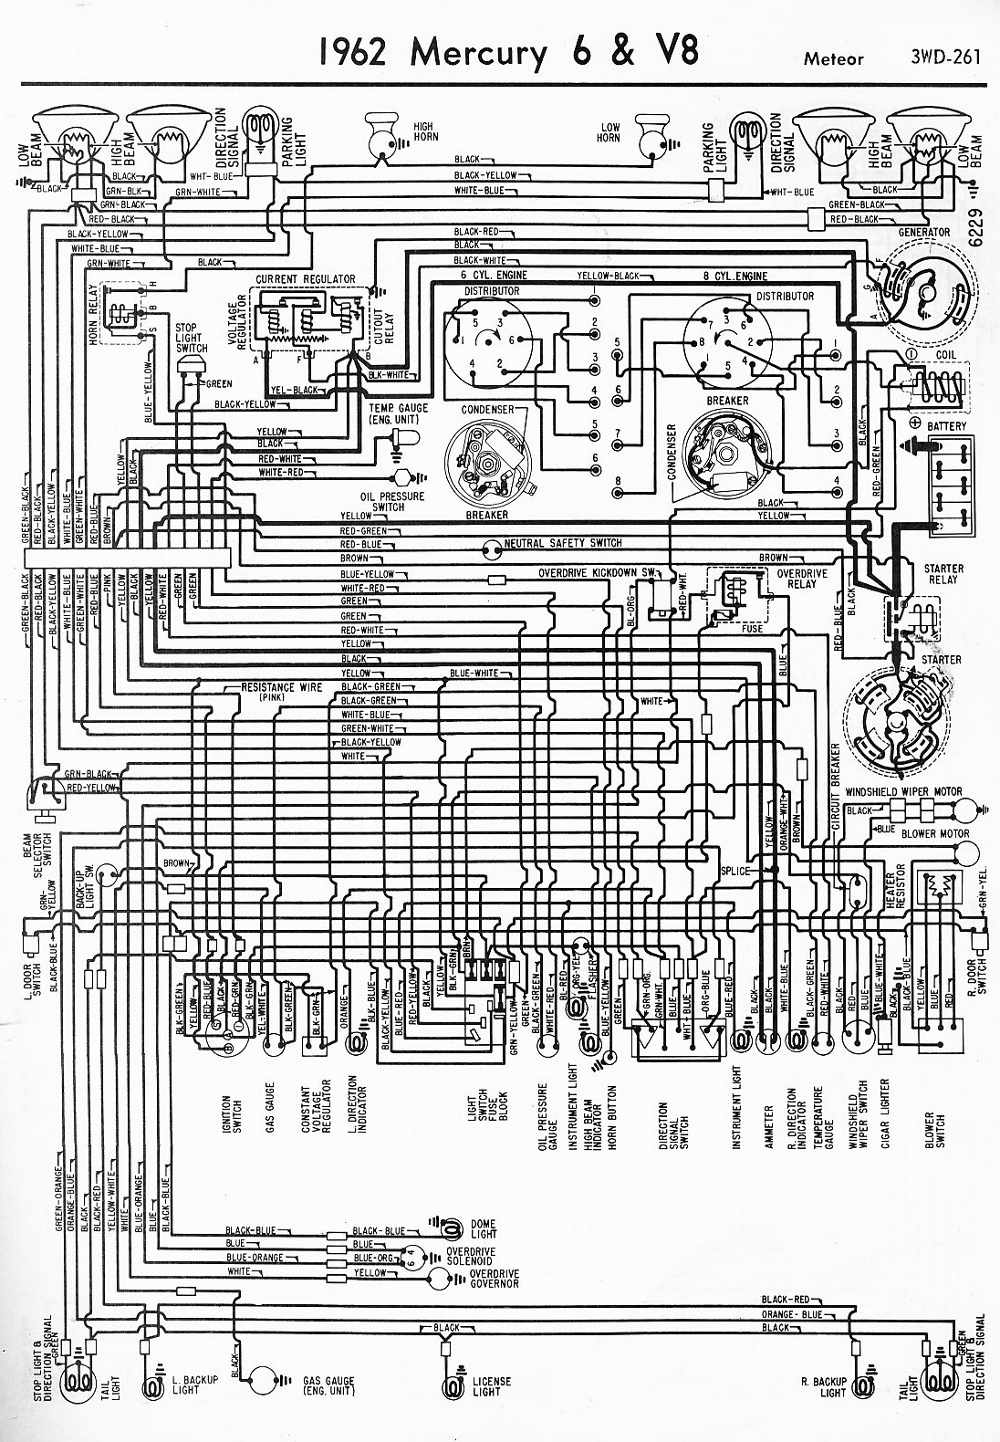 1966 mercury park lane wiring diagram simple wiring post rh 29 asiagourmet igb de 1966 mercury montclair 1968 mercury park lane brougham [ 1000 x 1442 Pixel ]